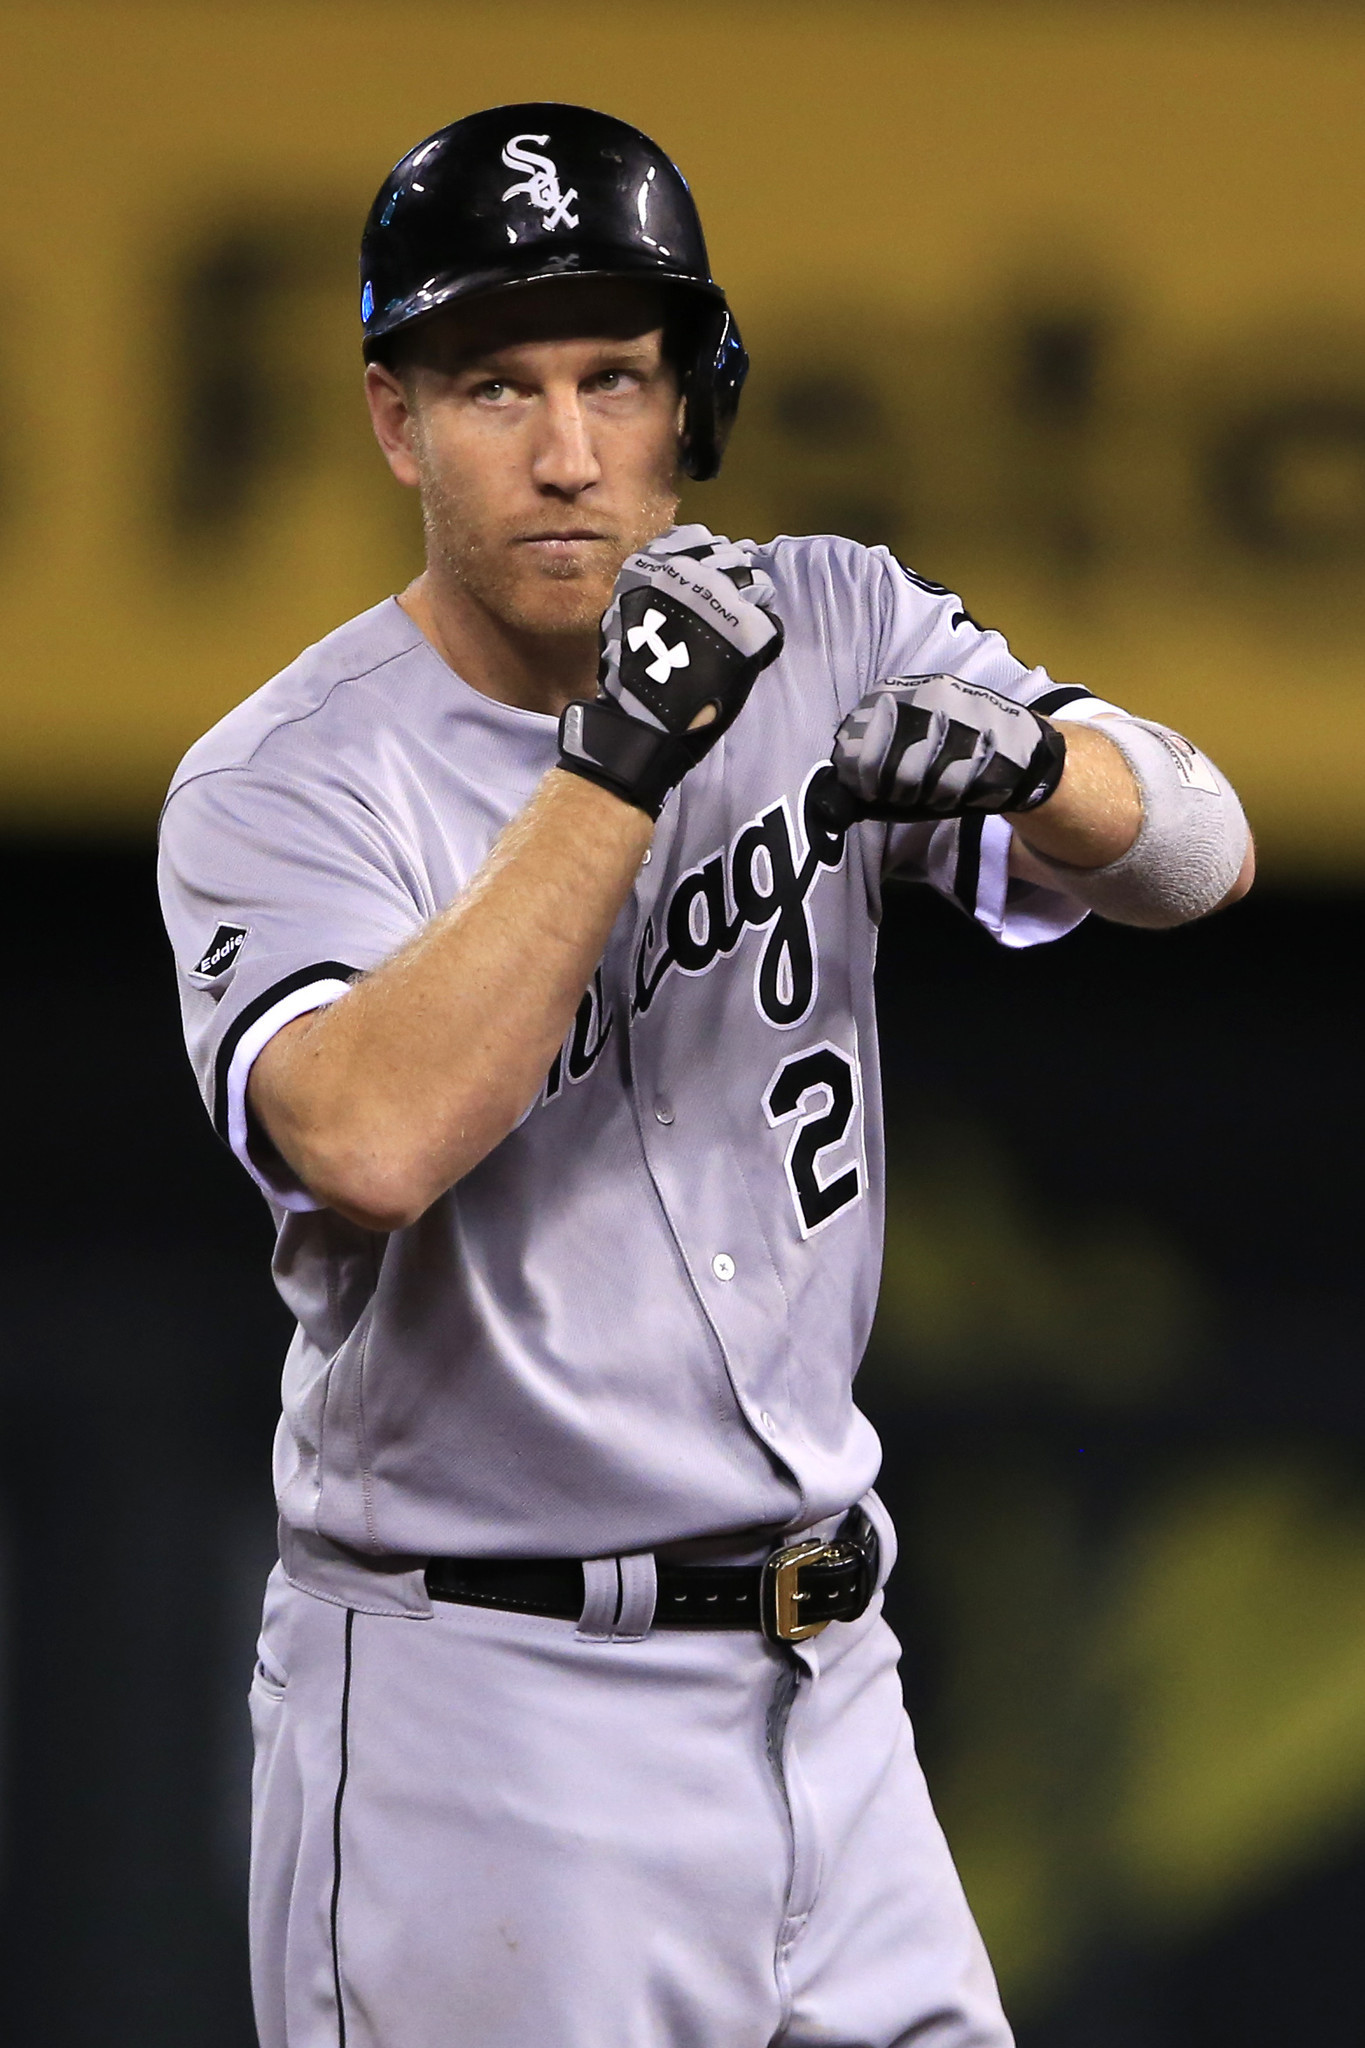 todd frazier said he had right to be miffed at inside